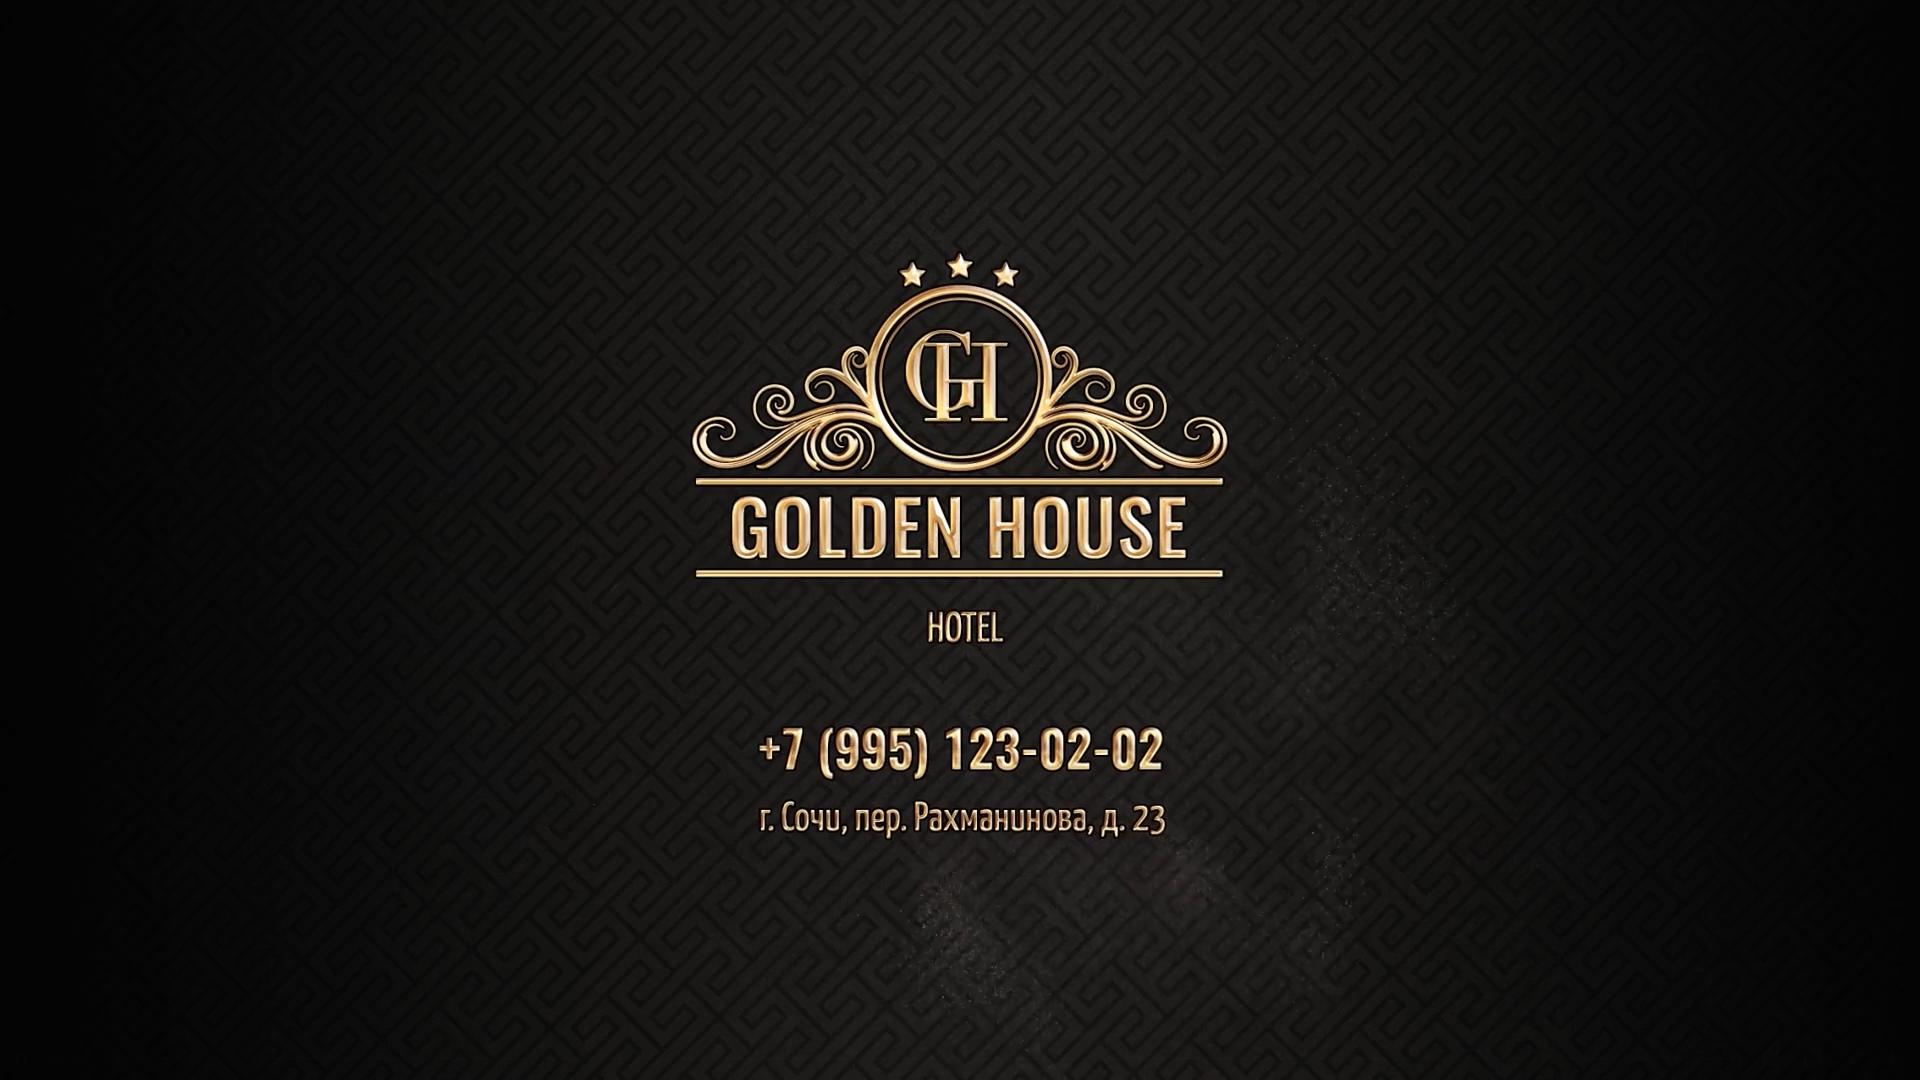 Golden House Hotel